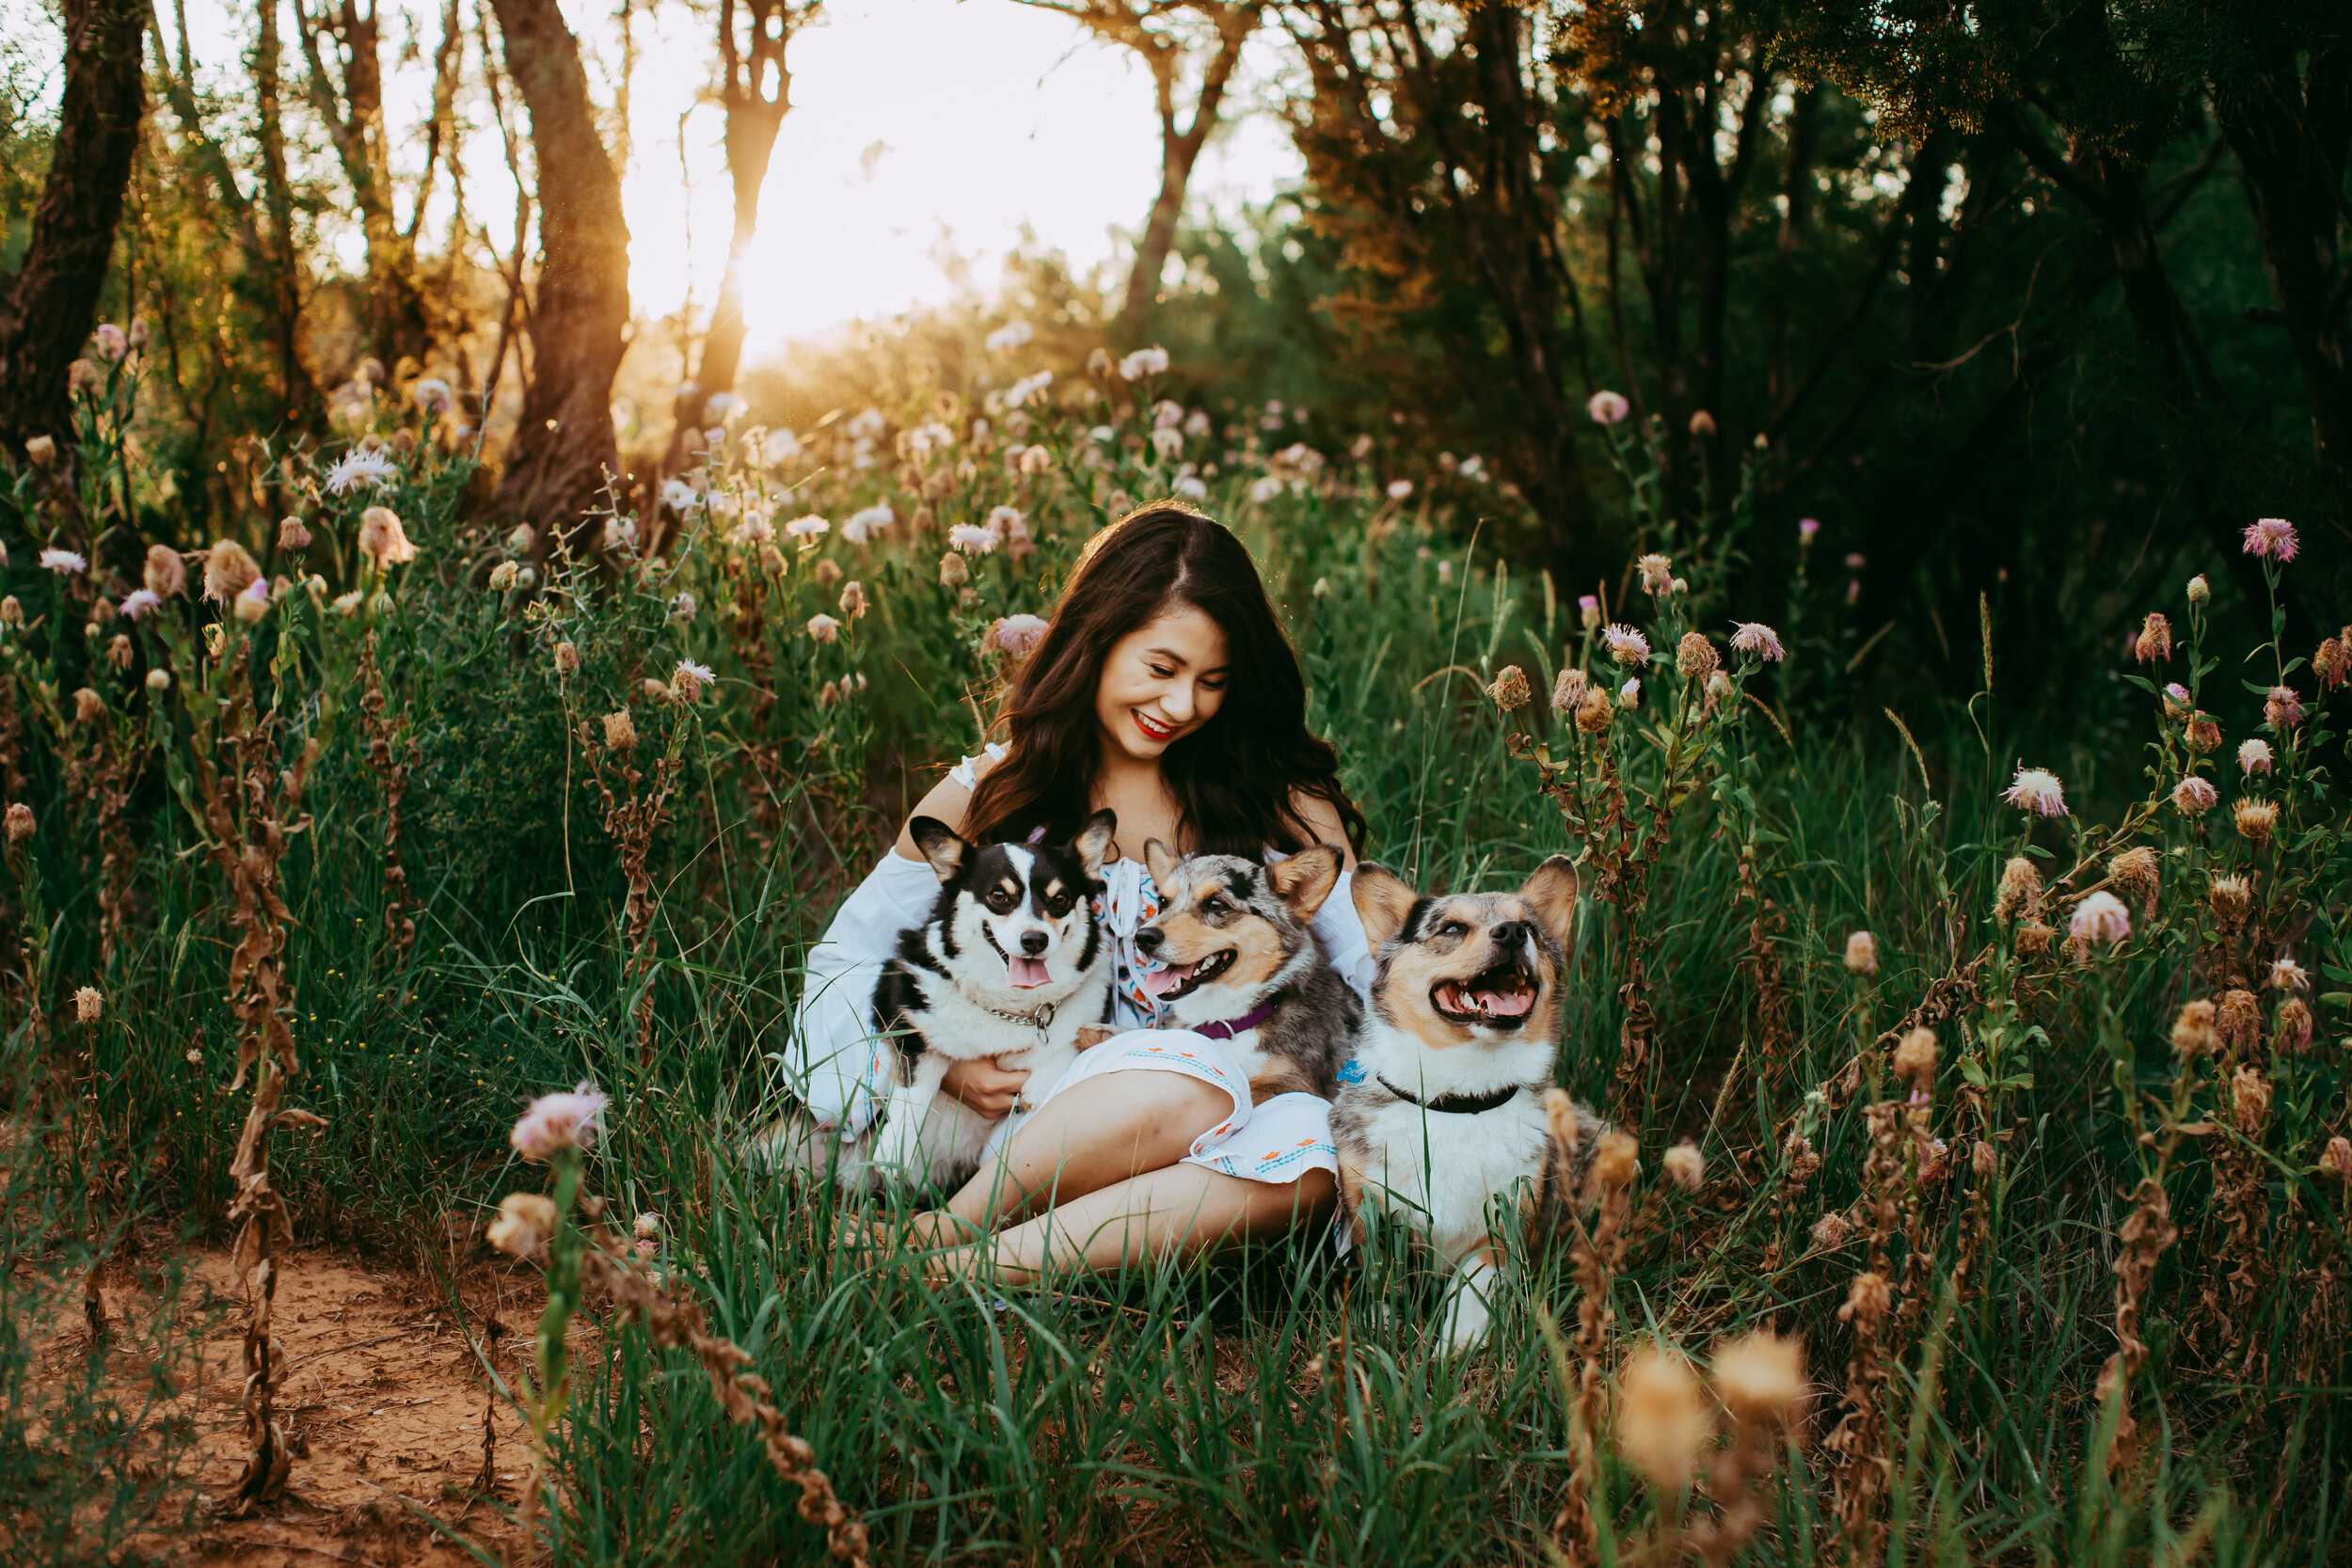 Natural unposed photograph with her puppies by her side #tealawardphotography #texasphotographer #amarillophotography #amarillophotographer #lifestylephotography #emotionalphotography #photoshoot #family #puppylove #purejoy #puppyphotos #lifestyleinteraction